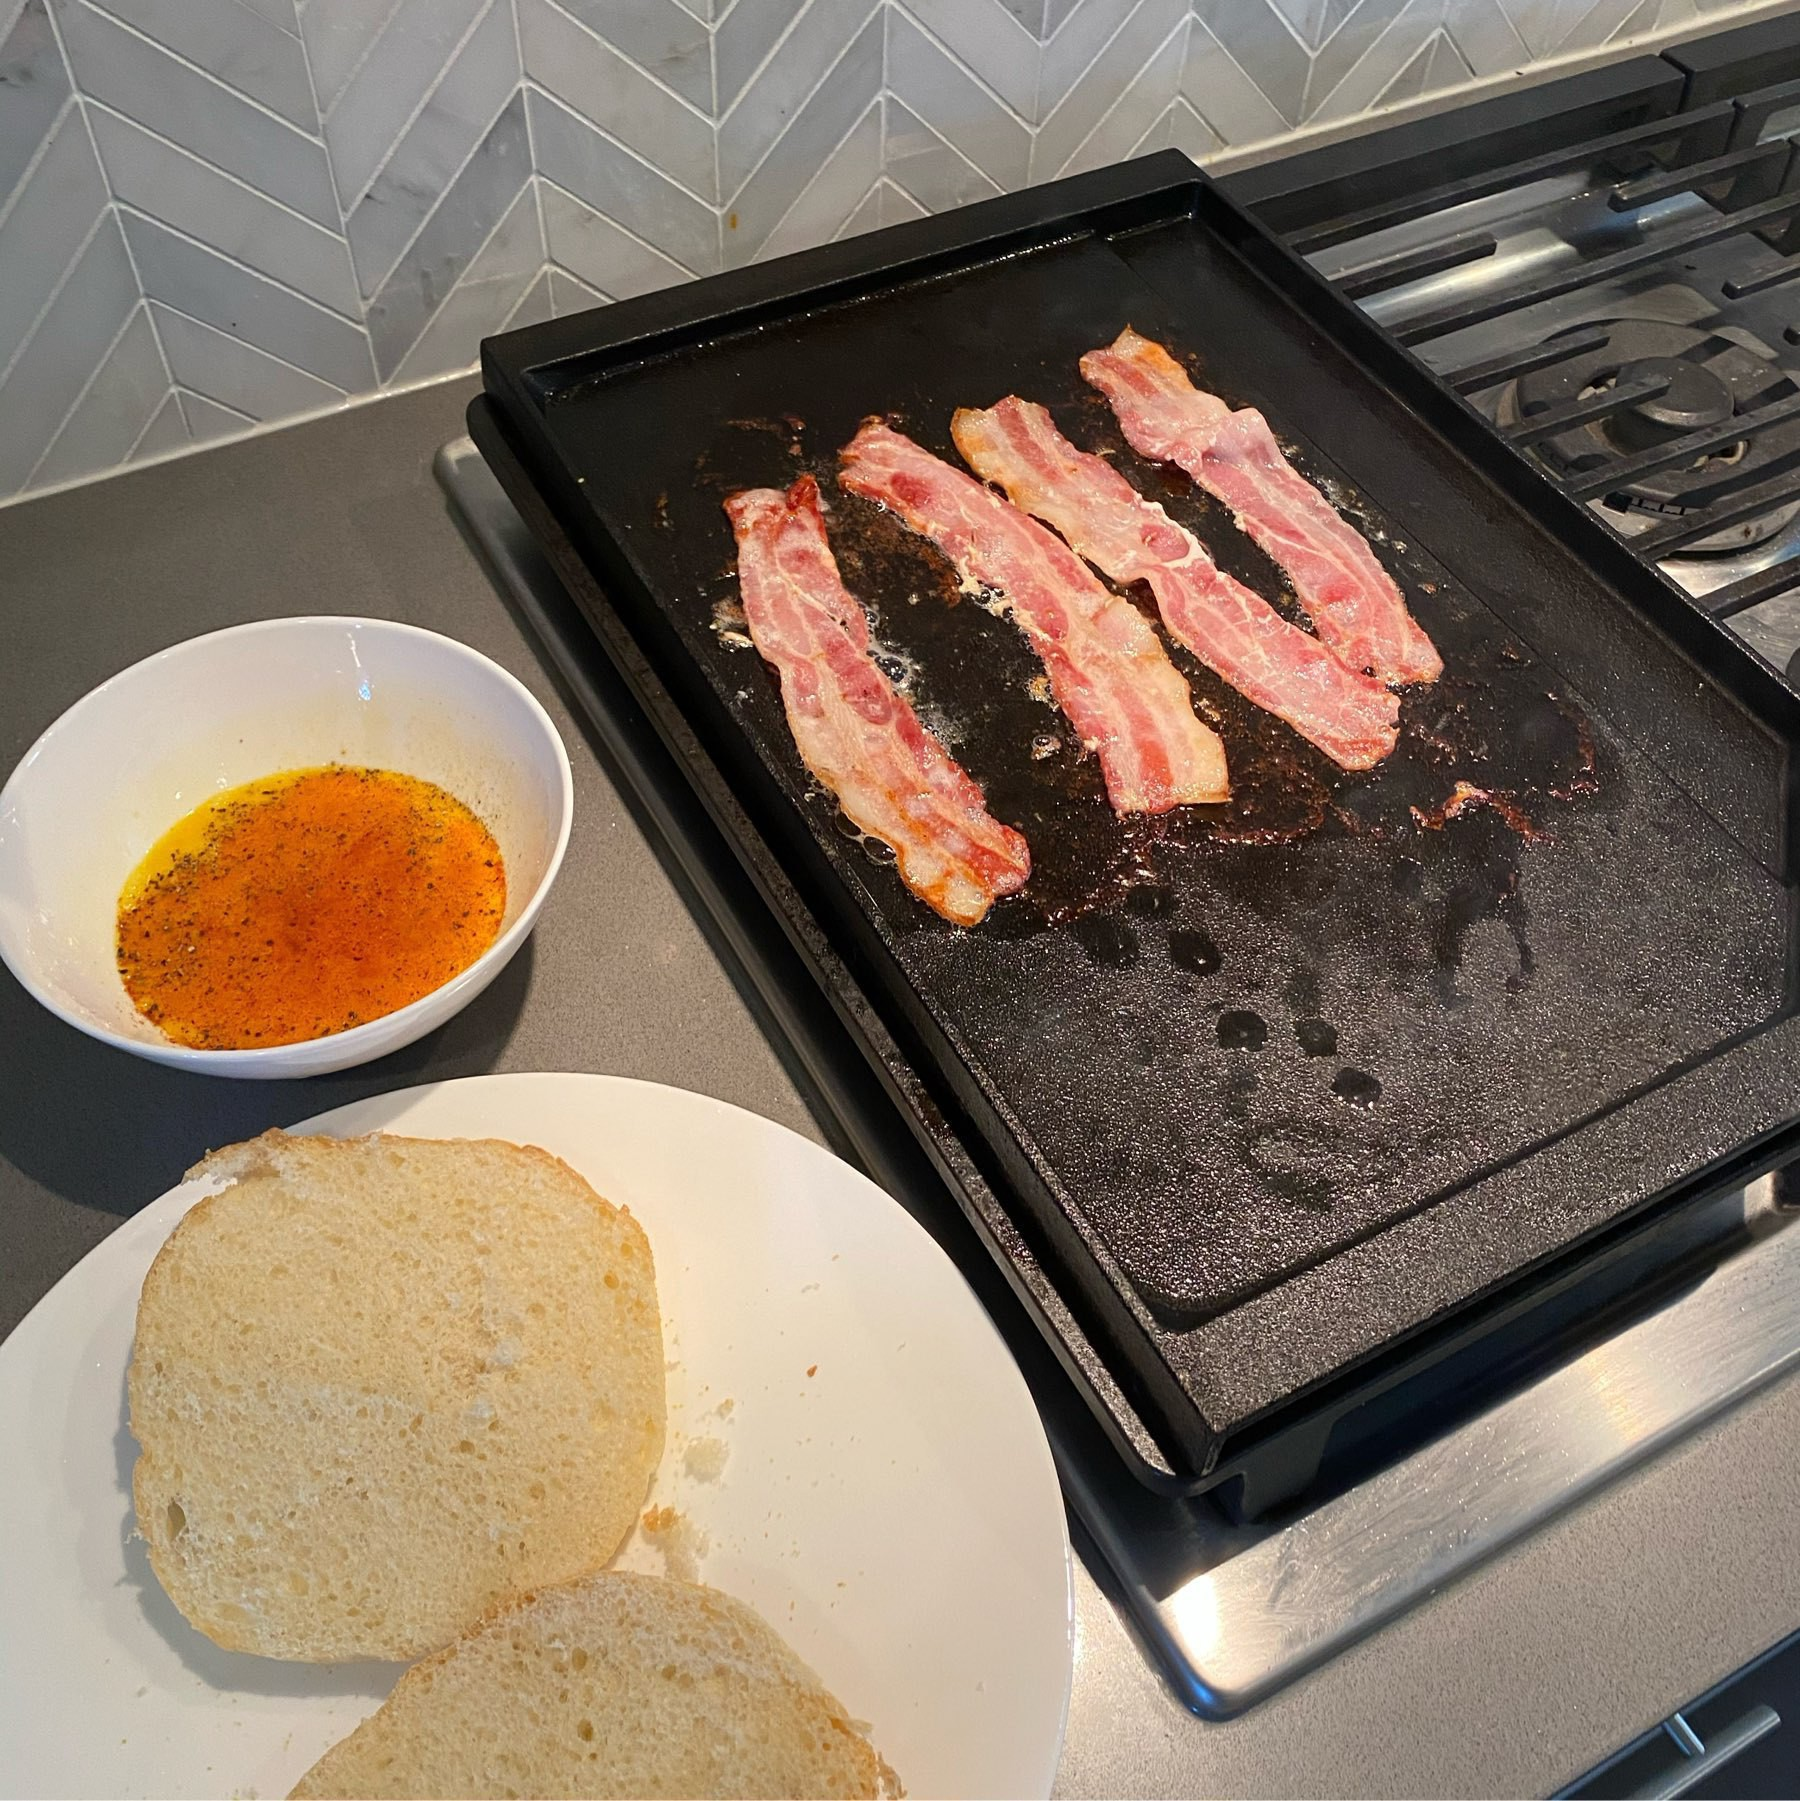 Bacon on a gas range griddle.